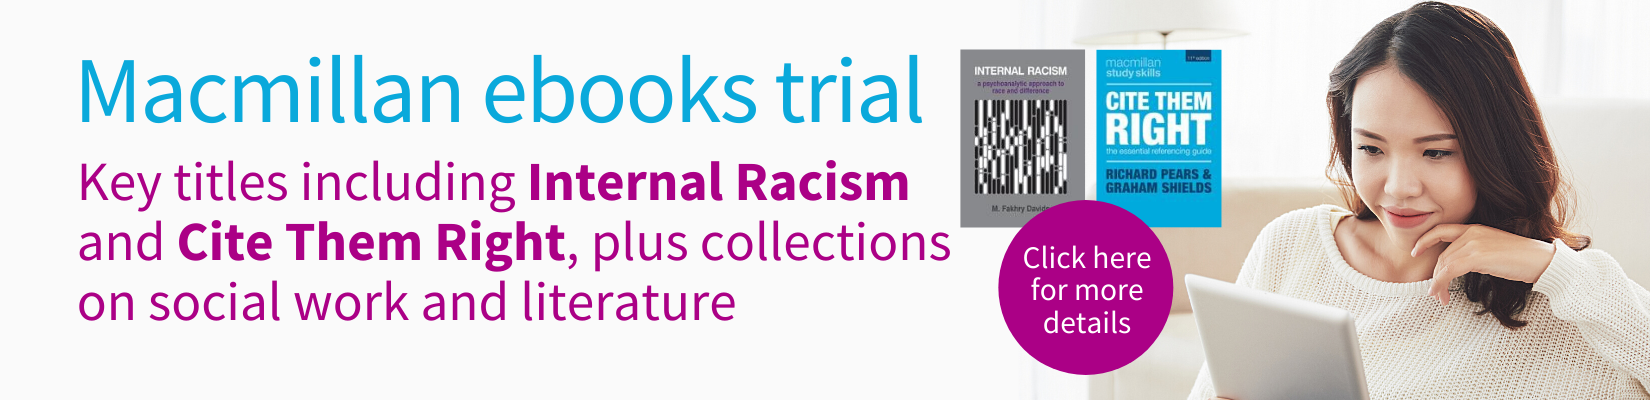 Macmillan ebook trial click here for more details